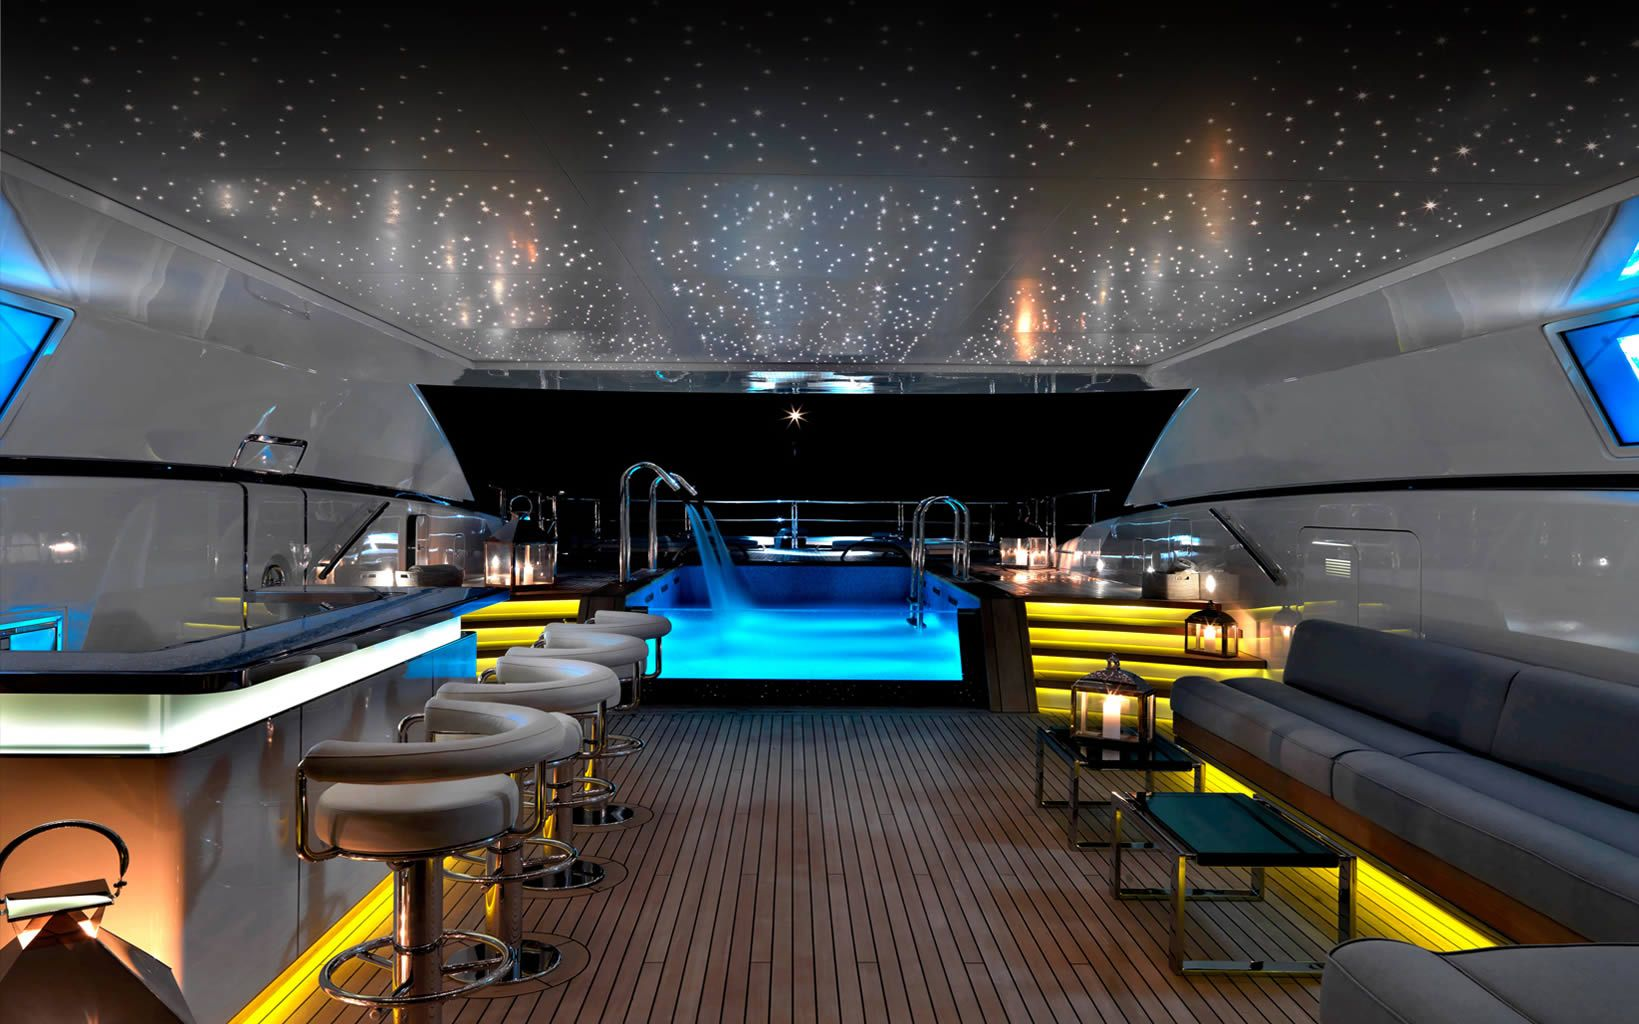 Superyacht interior design numptia